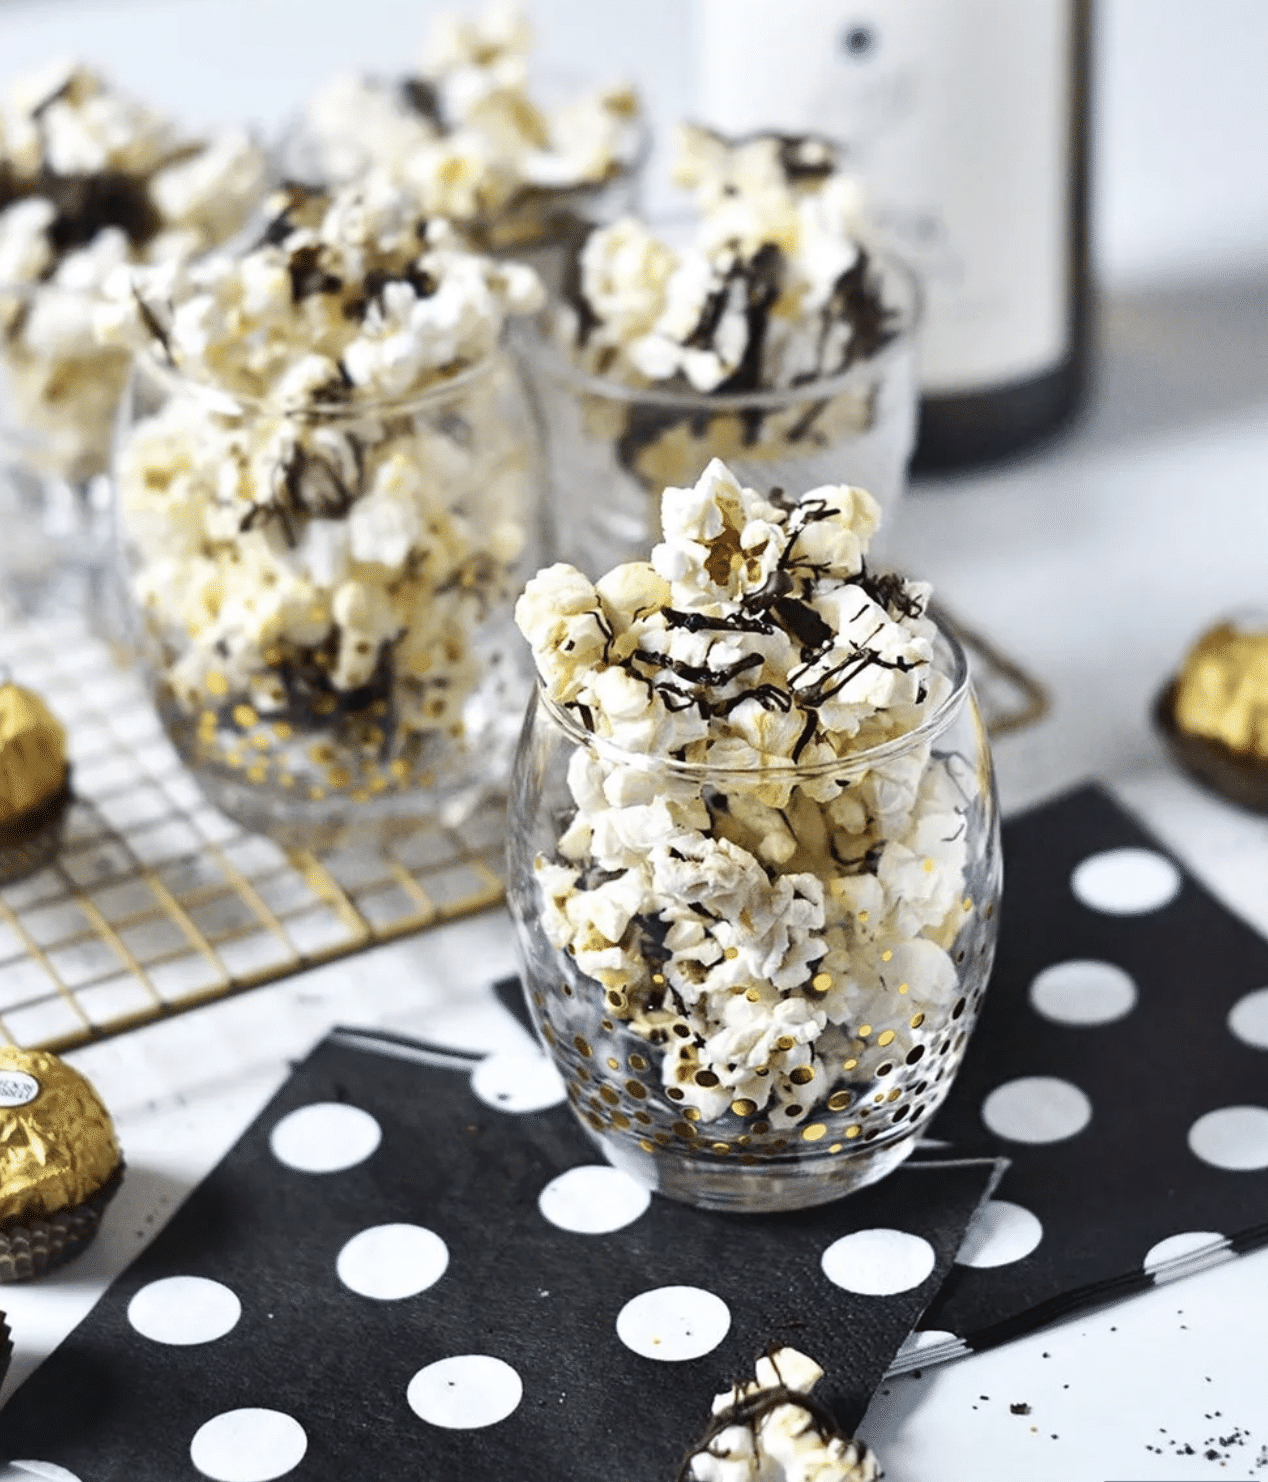 Black and white popcorn makes delicious Oscar party food